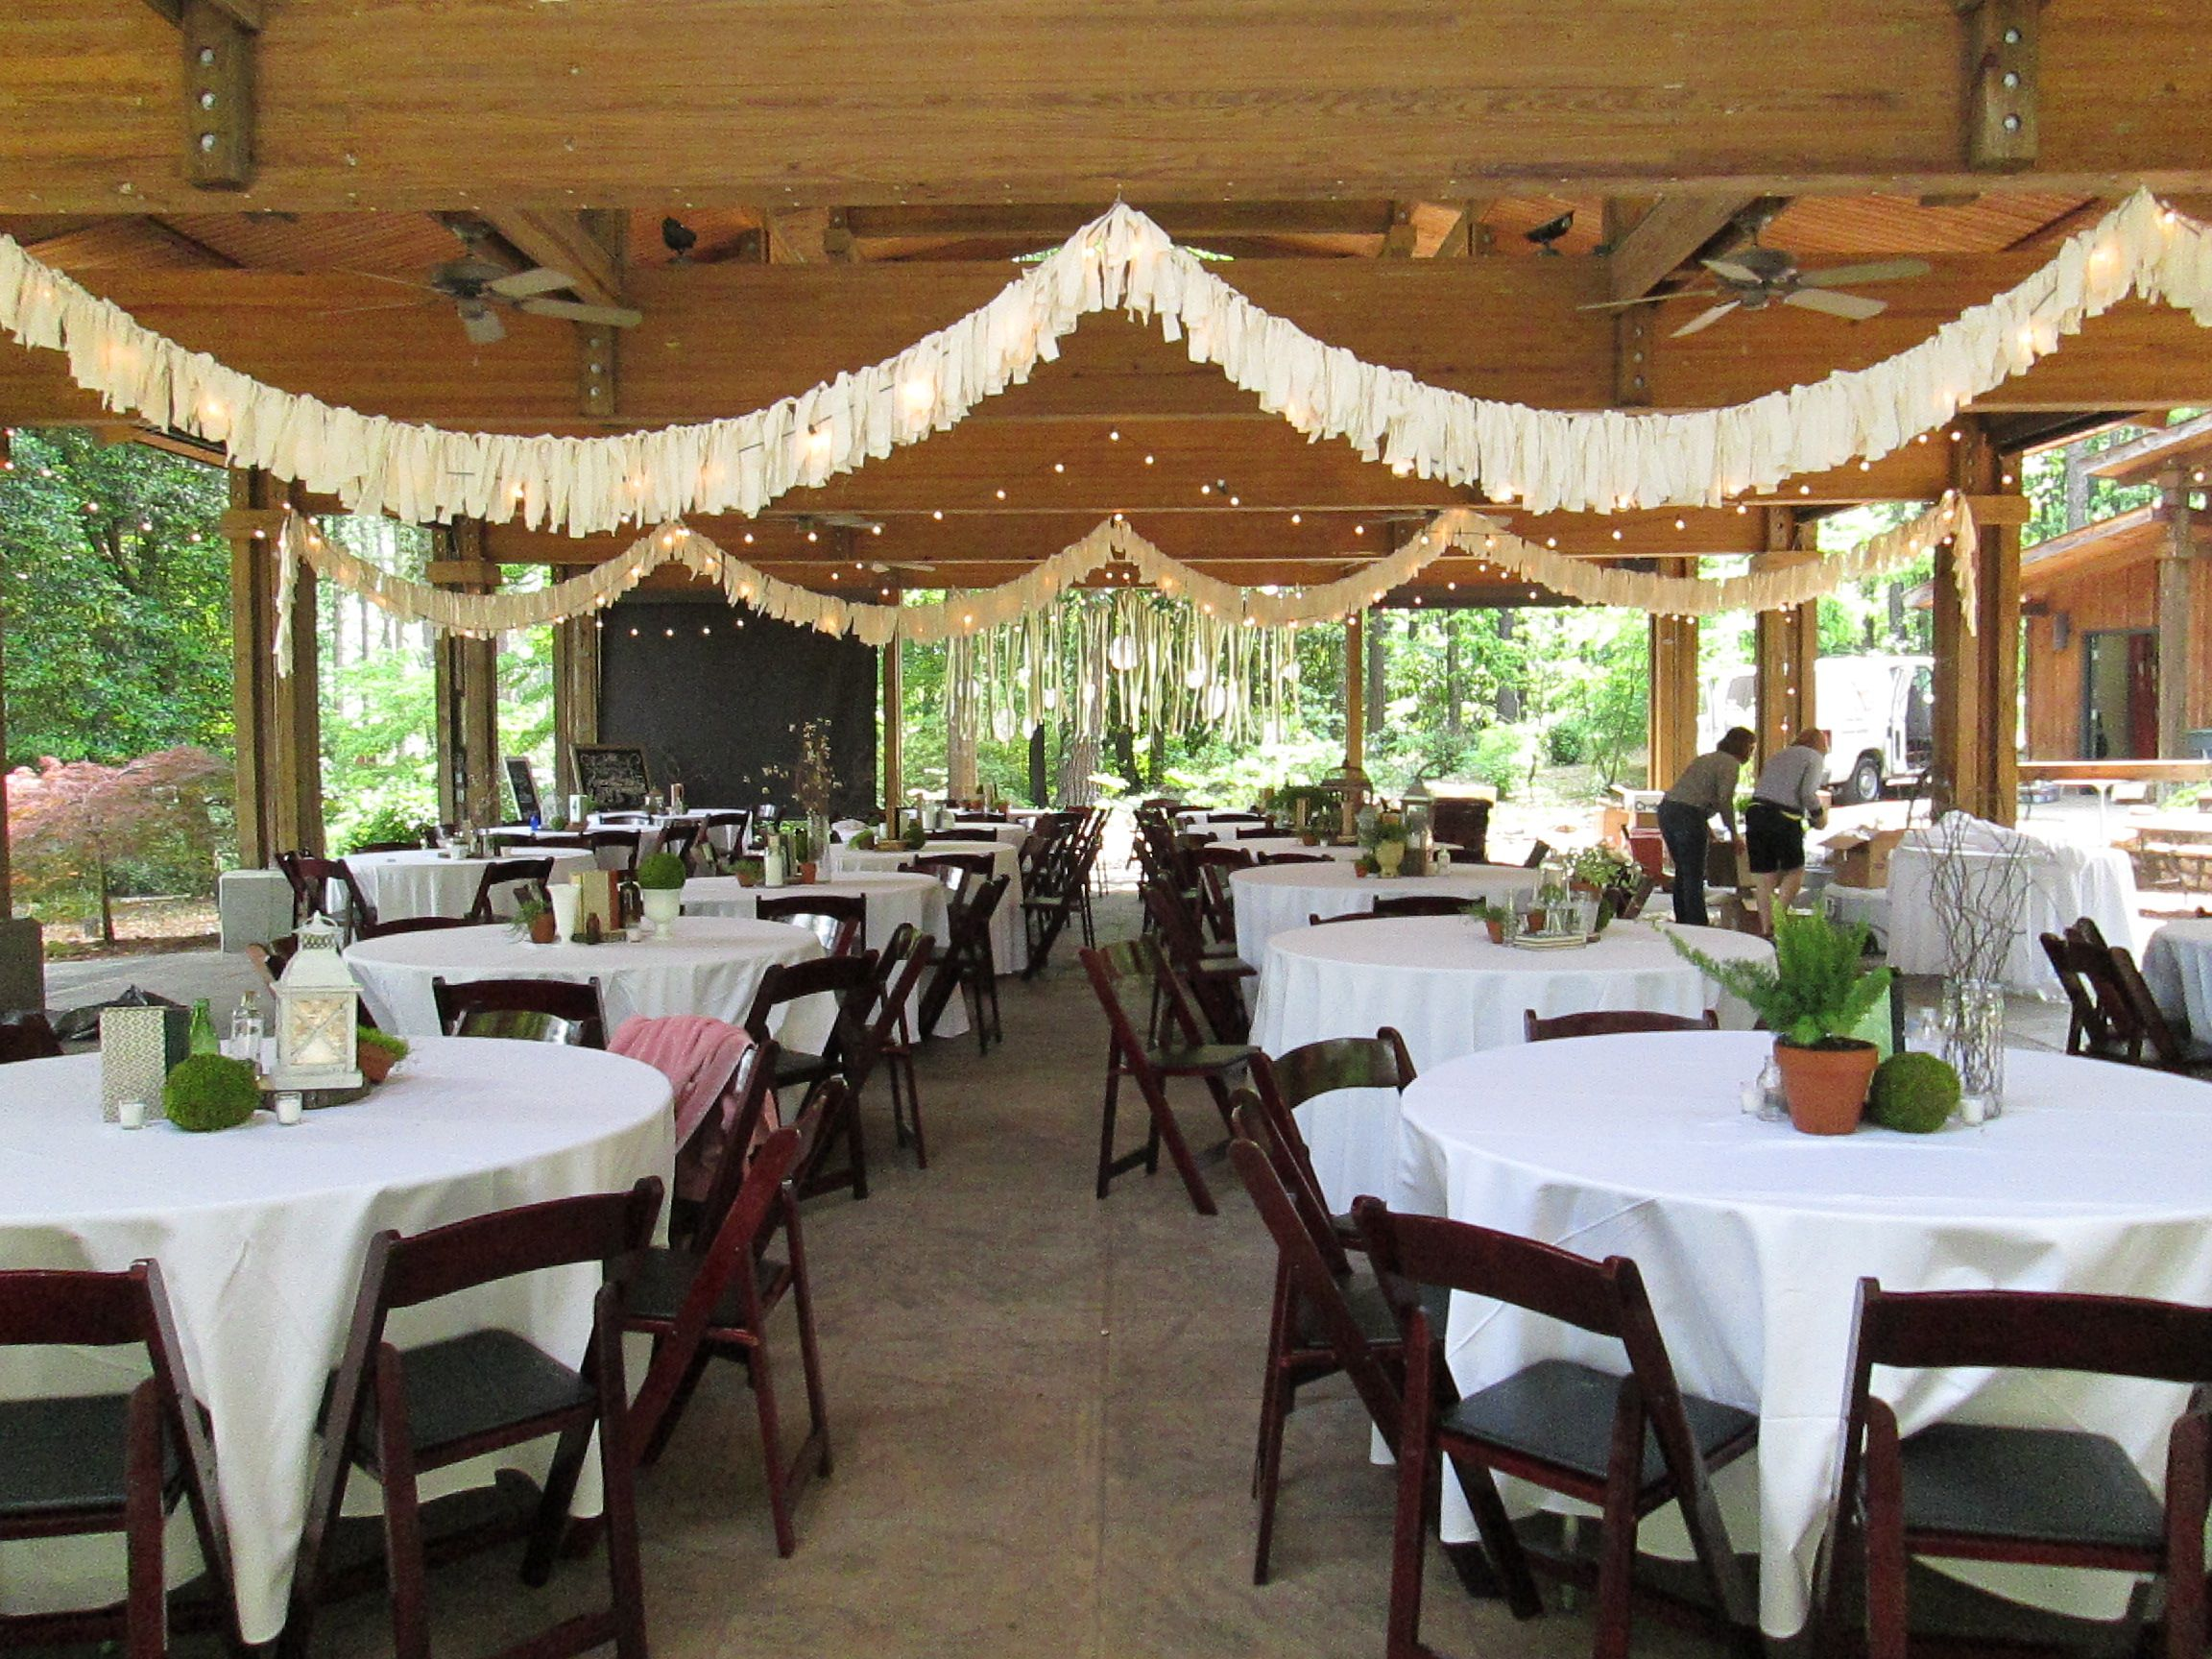 Stringing Lights And Banners Under The Pavilion #wedding